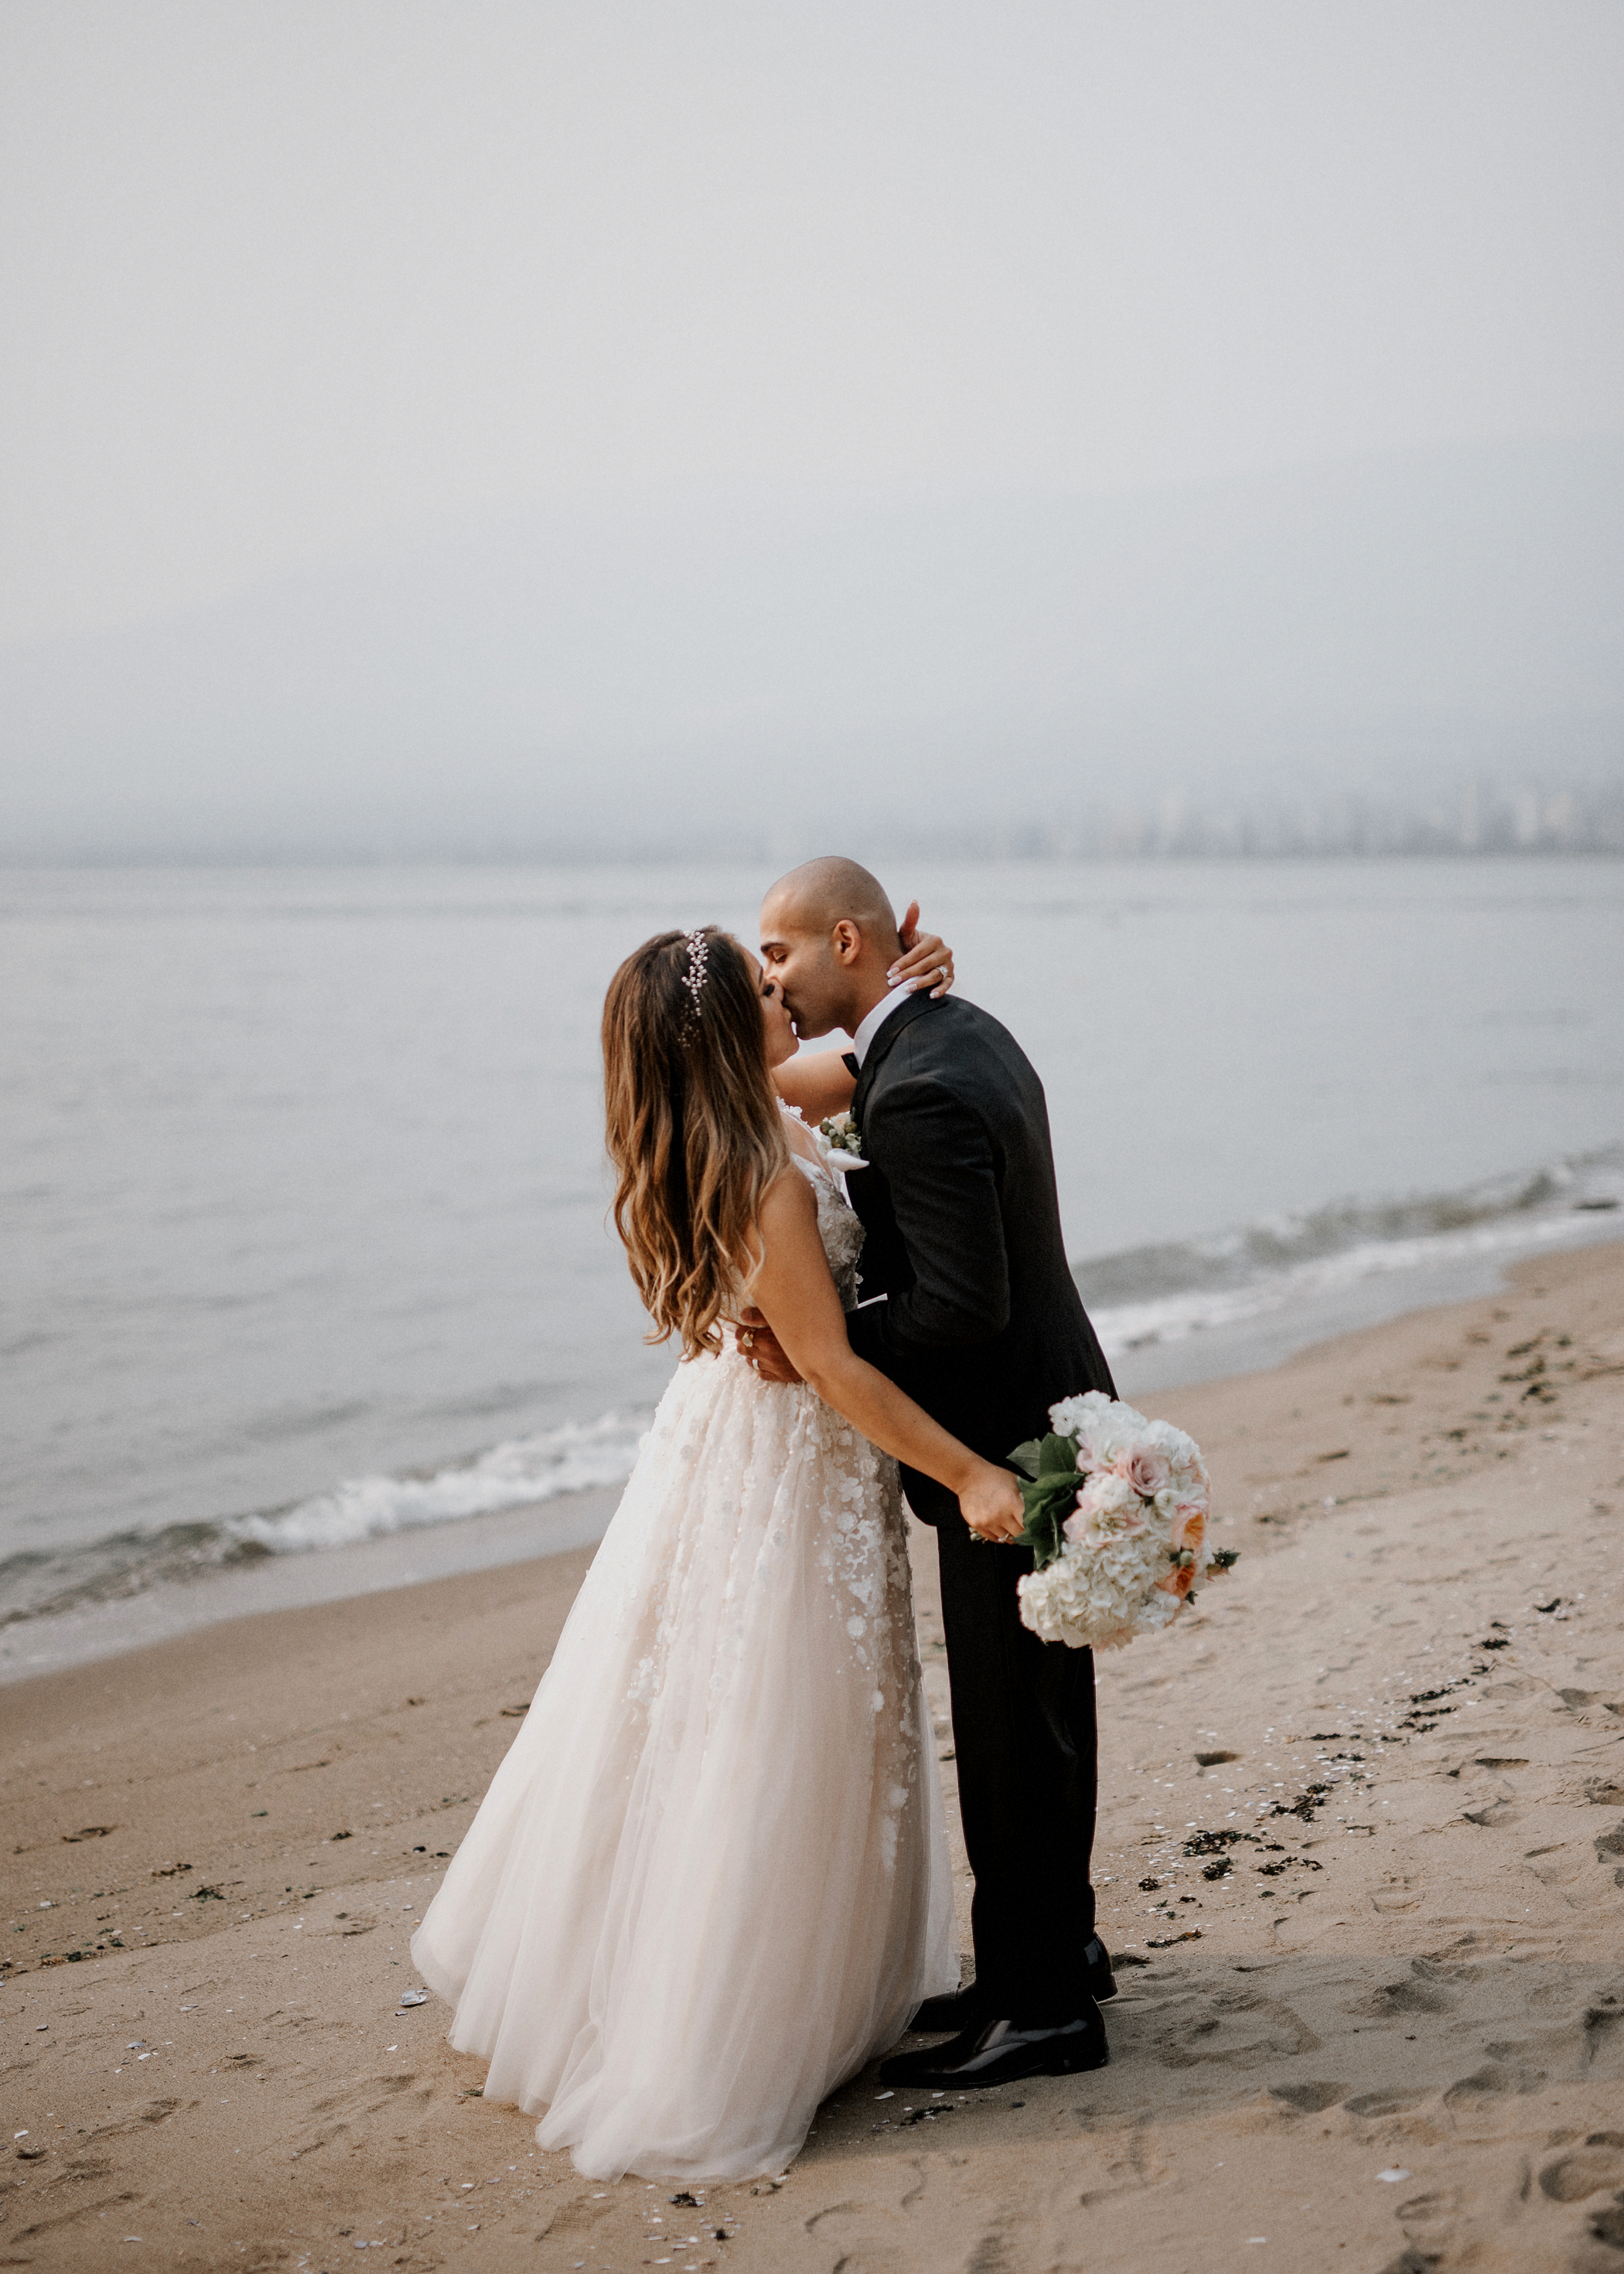 038-kaoverii-silva-LM-wedding-vancouver-photography-elopement-blog.png